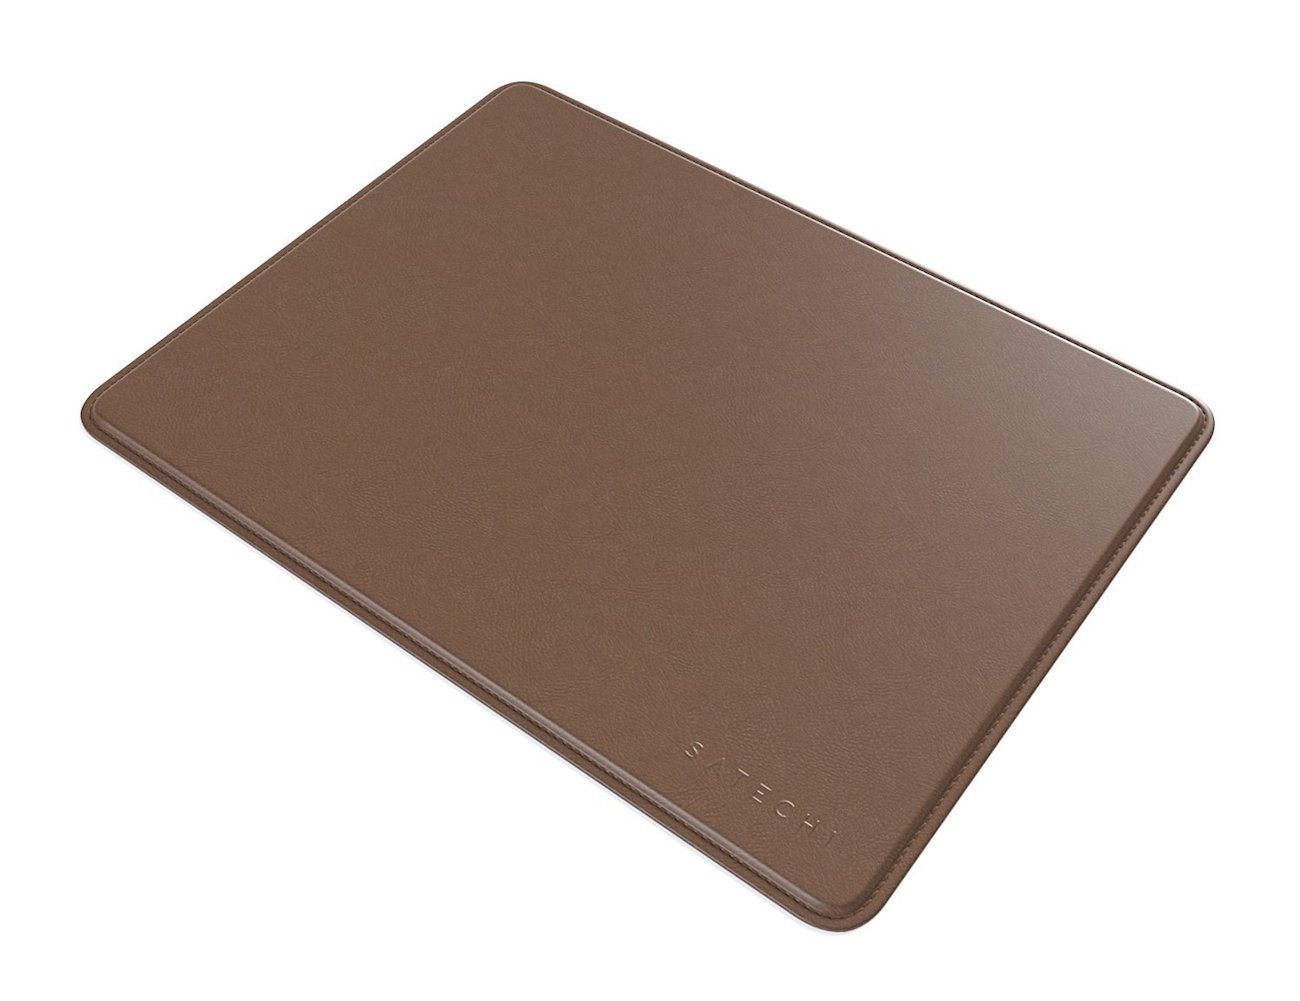 Satechi Eco-Leather Mouse Pad